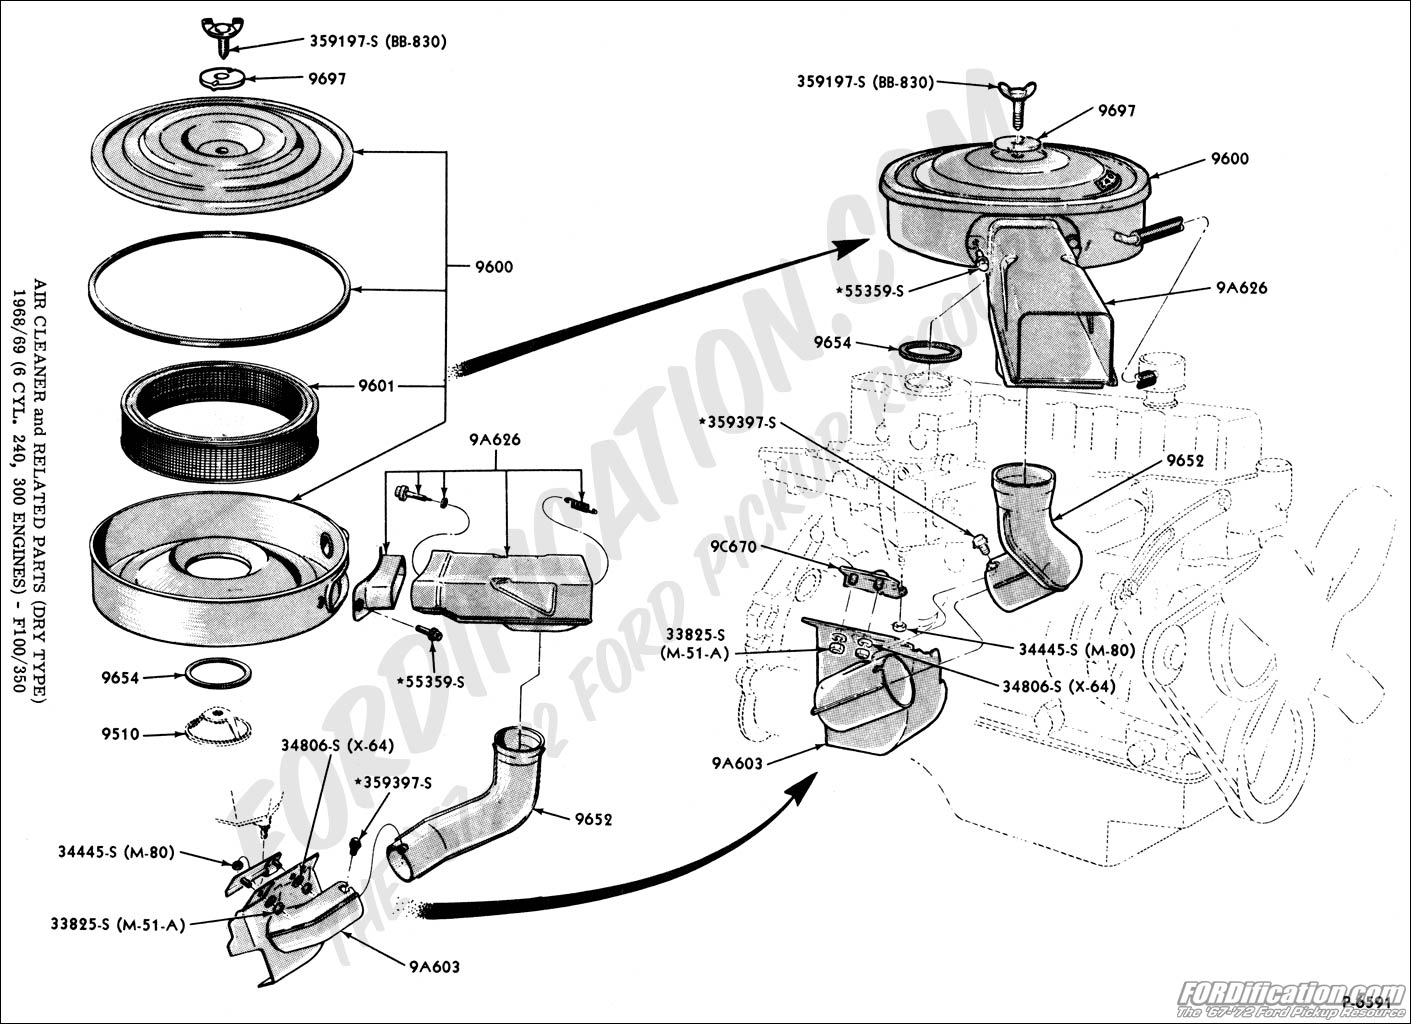 1967 ford f100 carburetor auto electrical wiring diagram 1968 Ford F100 Carburetor ford truck technical drawings and schematics